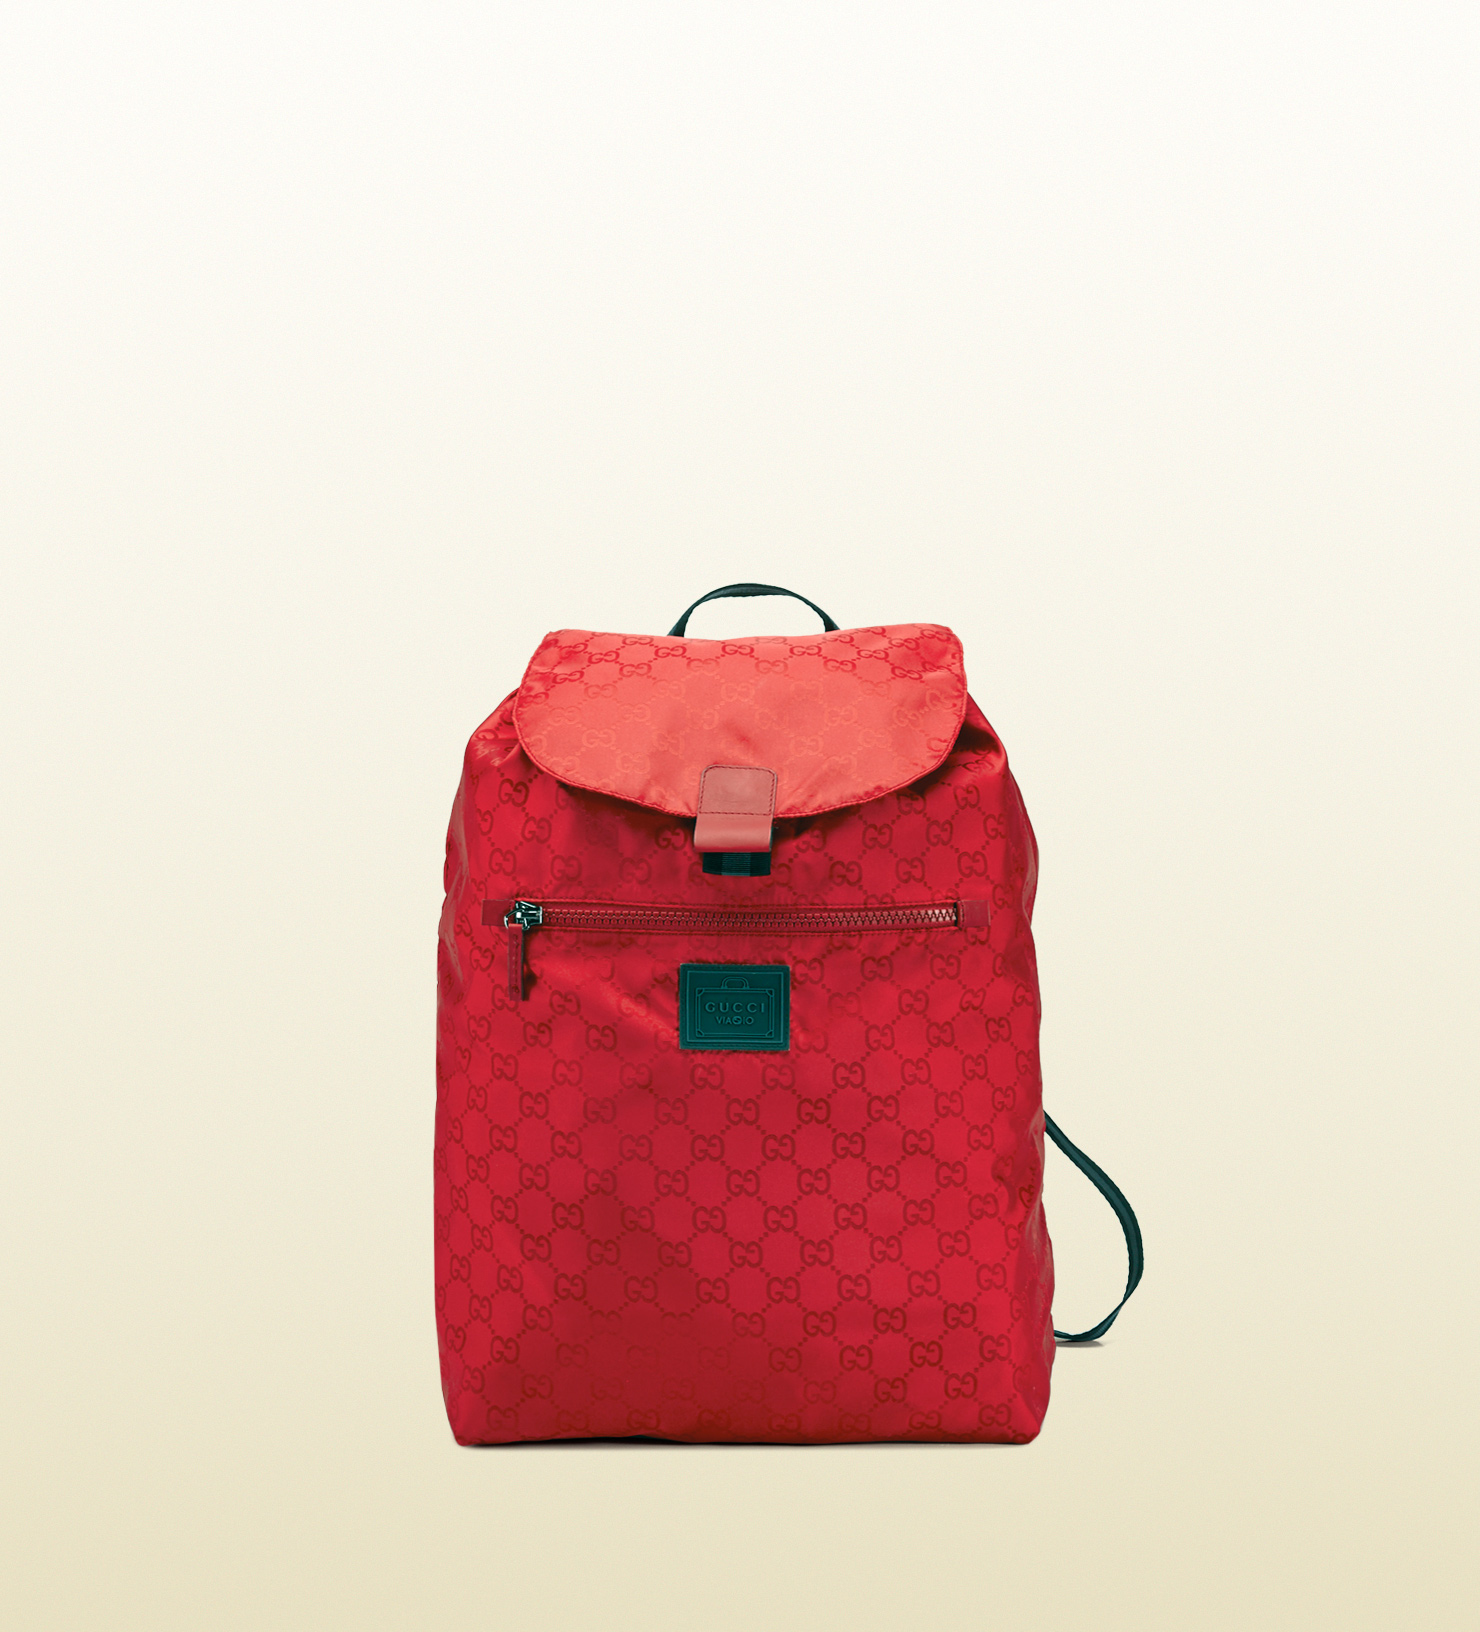 60aabe8fb194 Gucci Gg Nylon Backpack From The Viaggio Collection in Red for Men ...